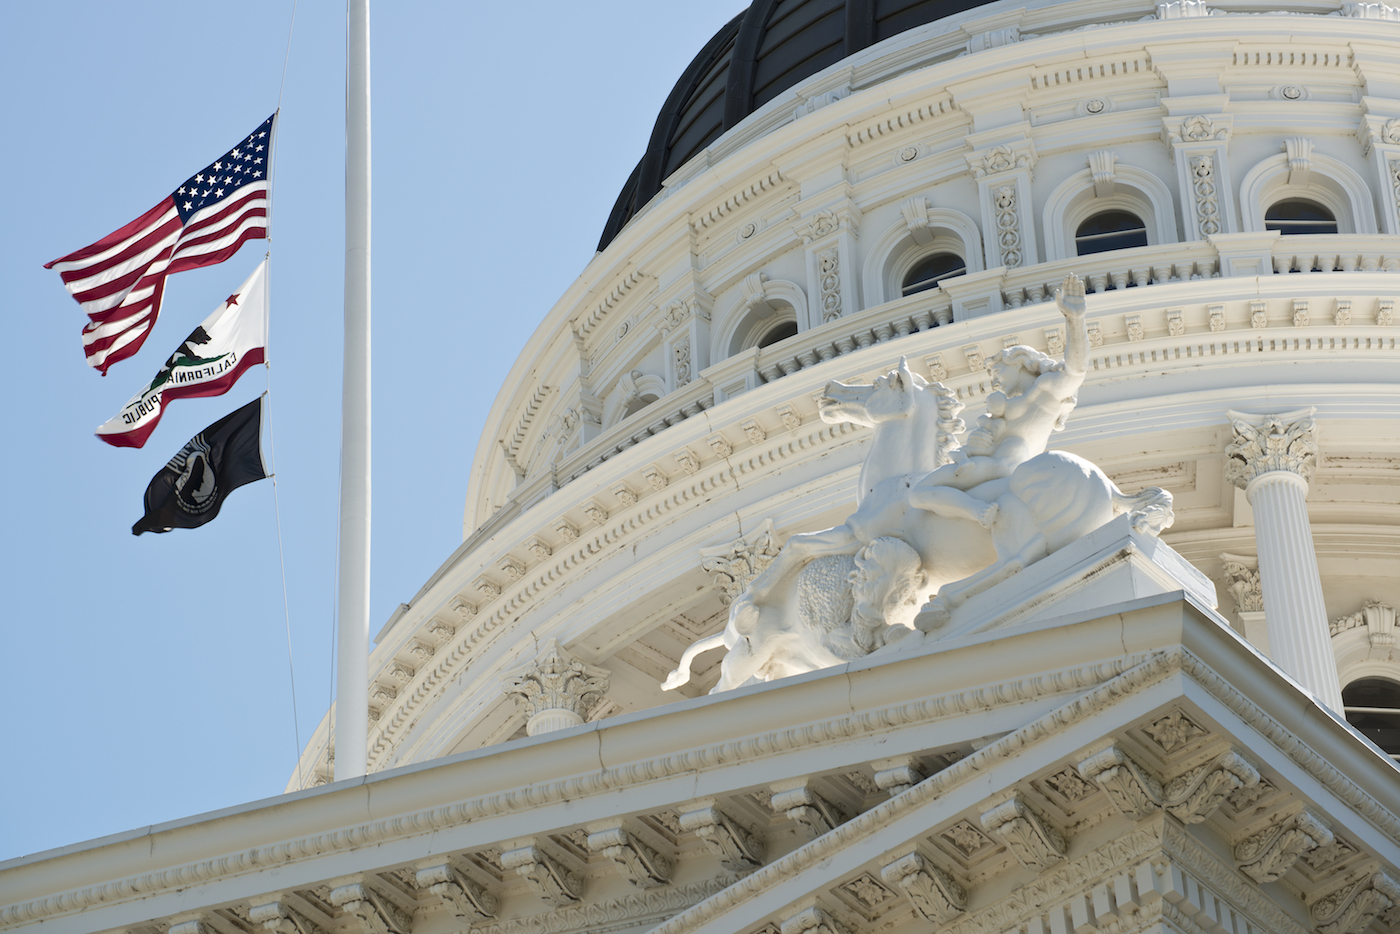 California Capital dome with Flags in front